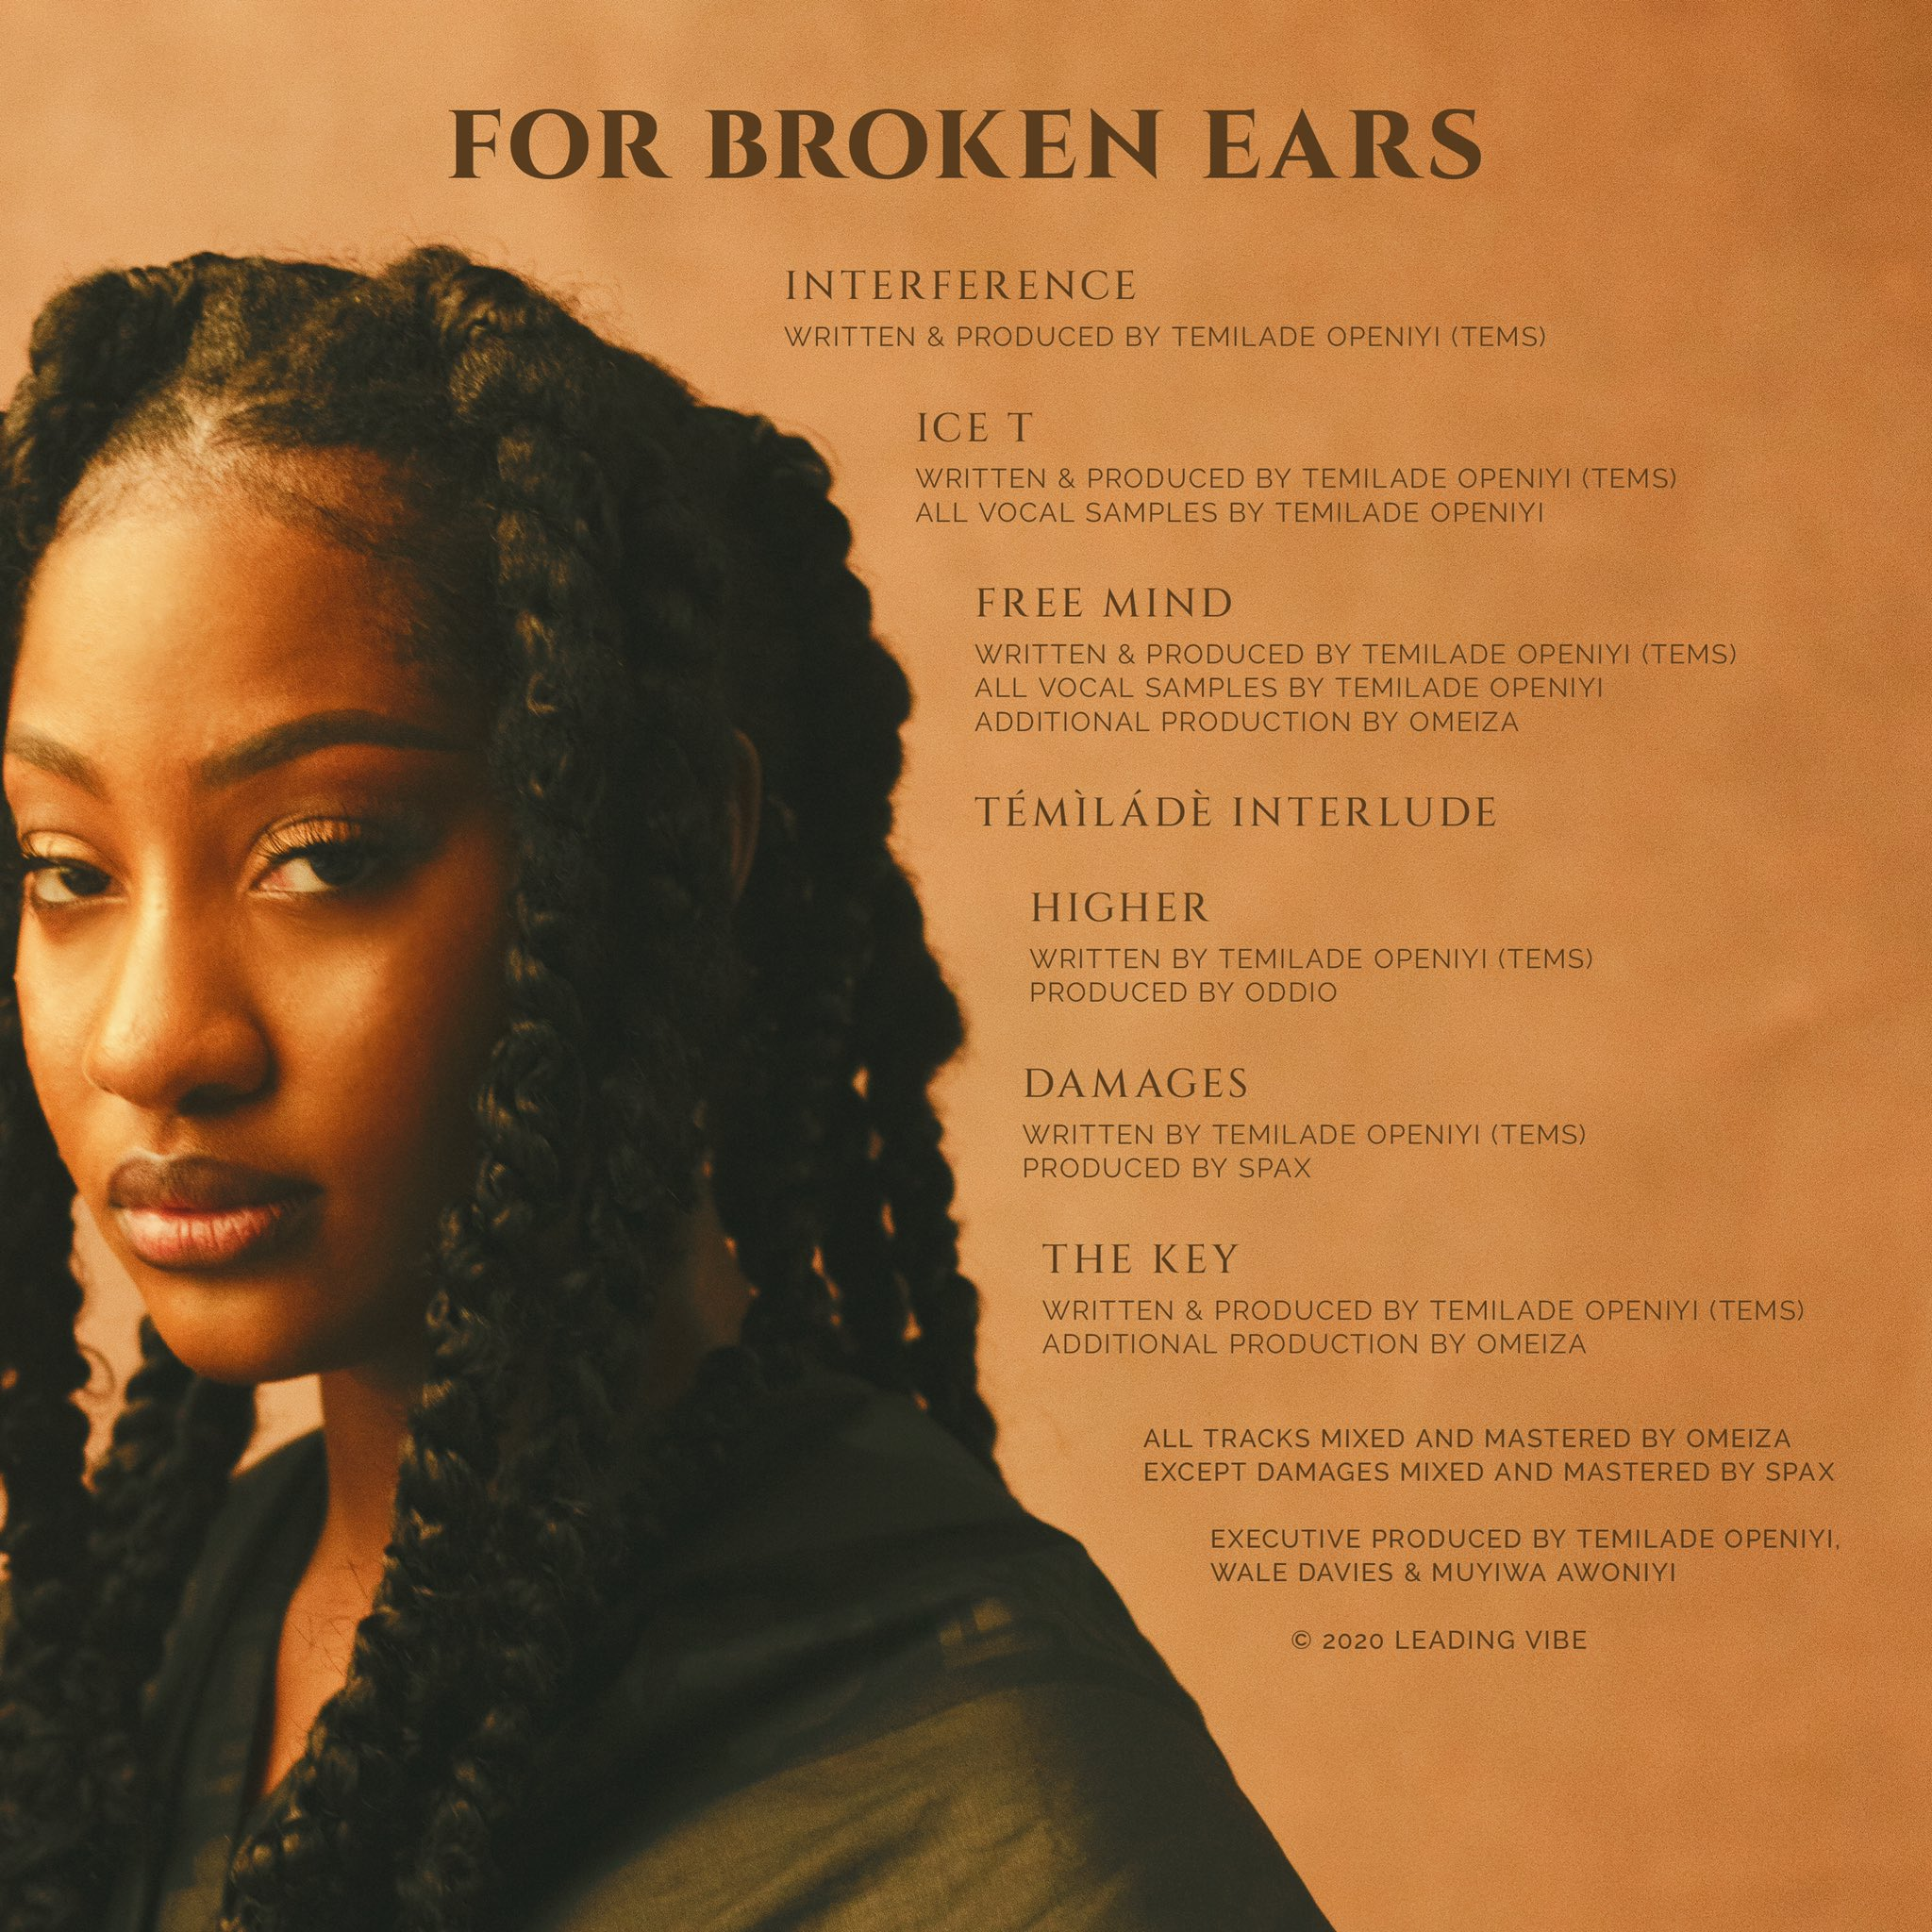 For Broken Ears Tracklist